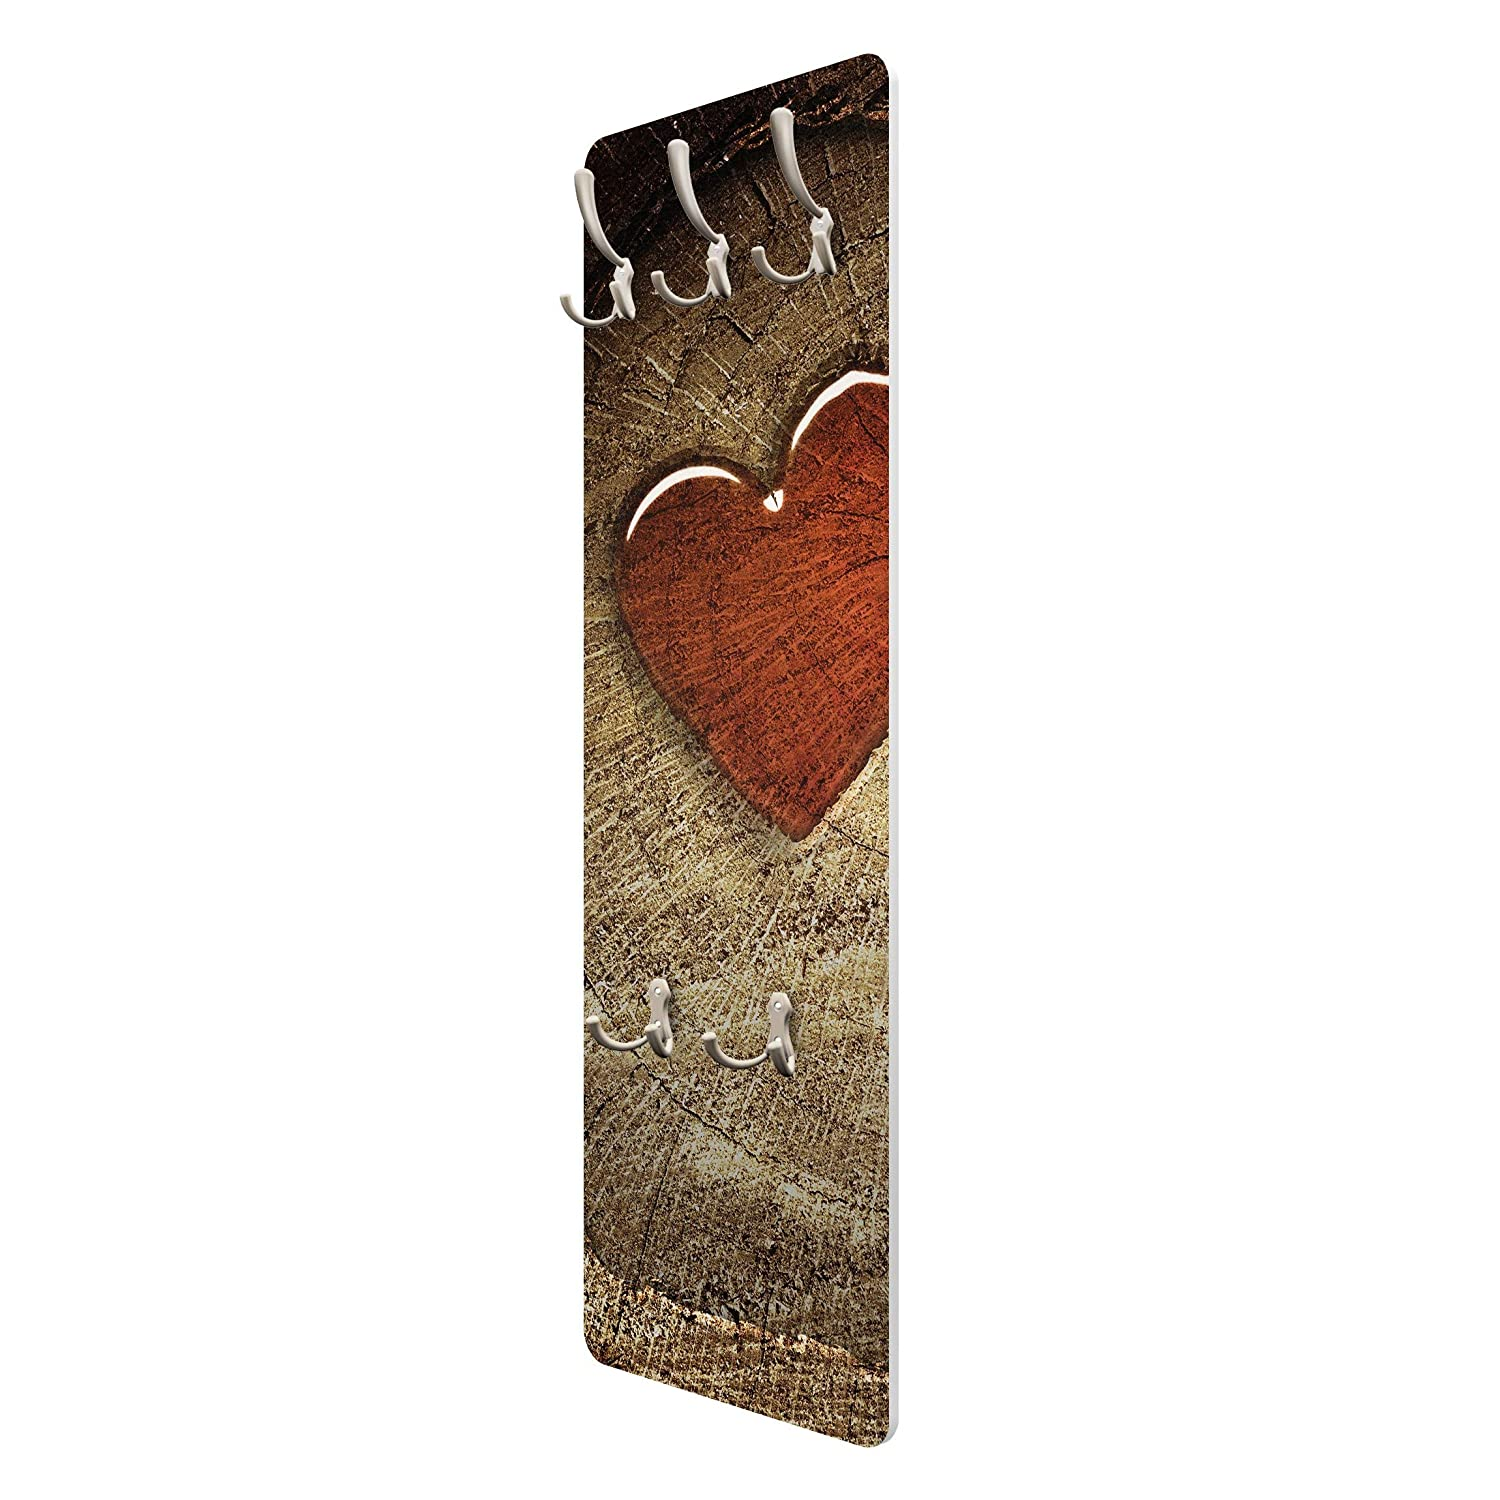 Apalis 72999 - Perchero de Pared Natural Love, 139 x 46 cm ...